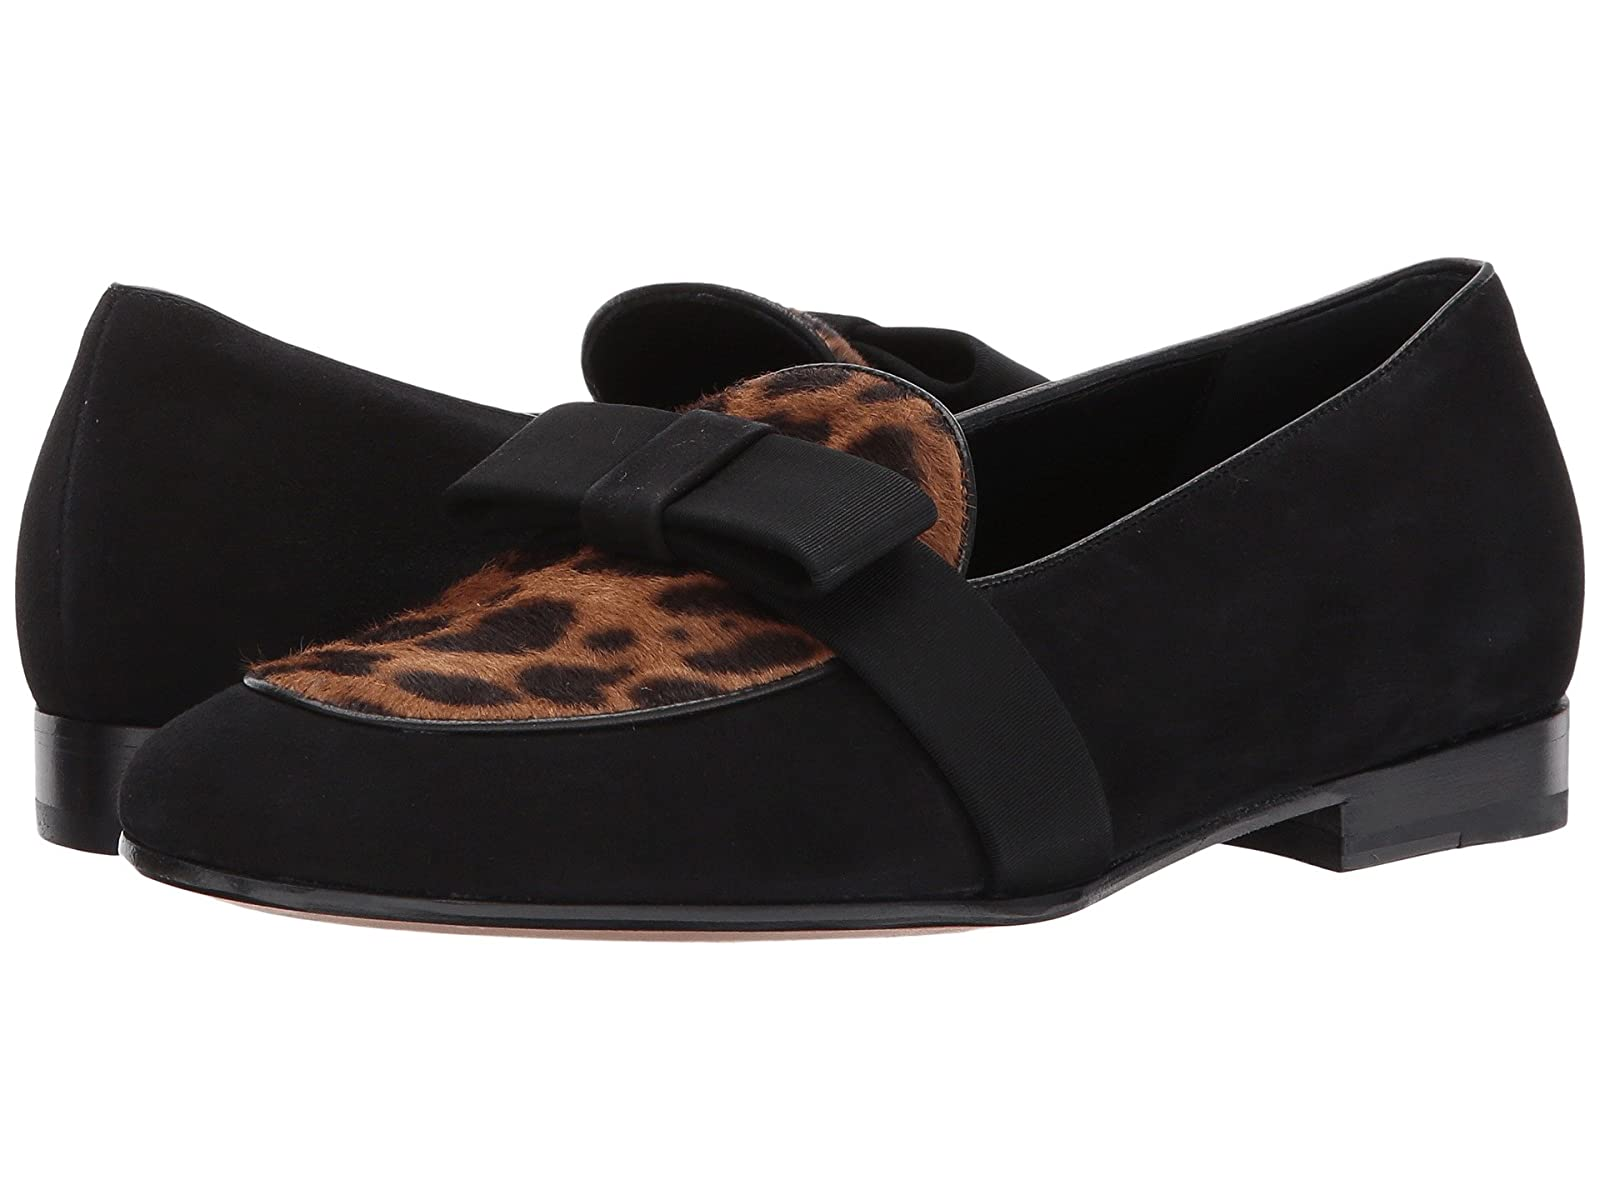 Etro Leopard LoaferCheap and distinctive eye-catching shoes